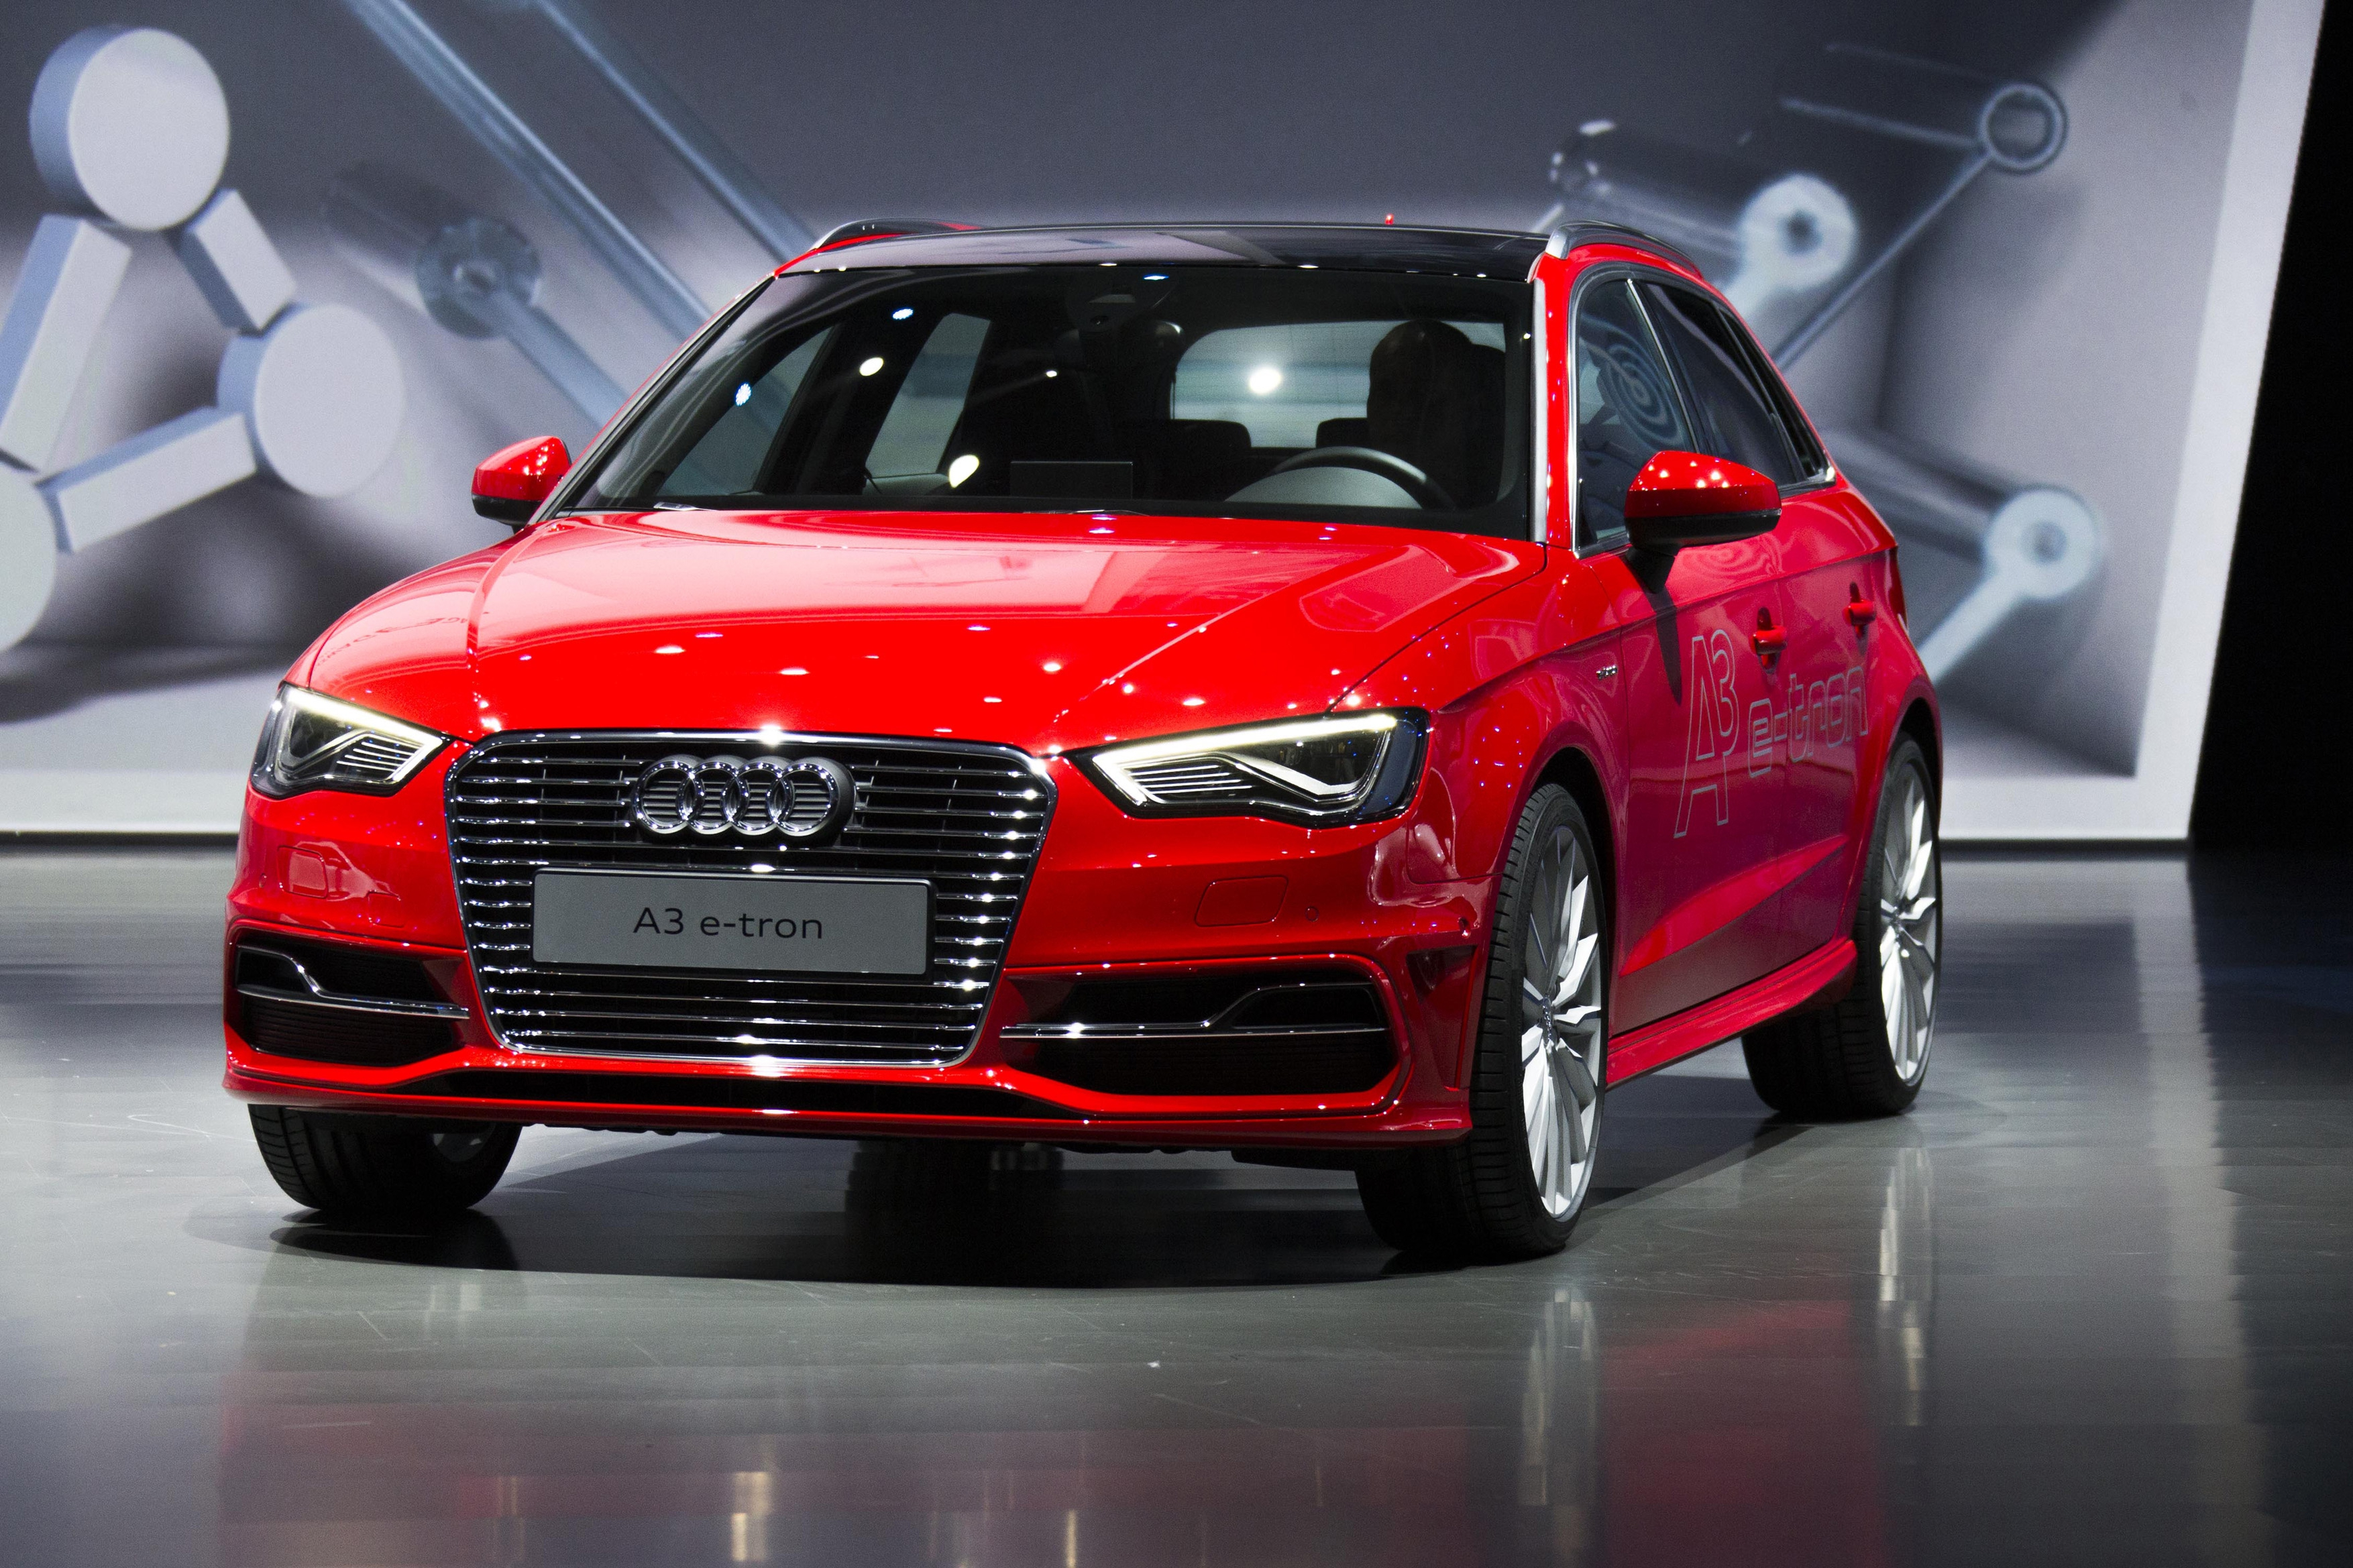 audi a3 sportback e tron wallpapers images photos pictures backgrounds. Black Bedroom Furniture Sets. Home Design Ideas